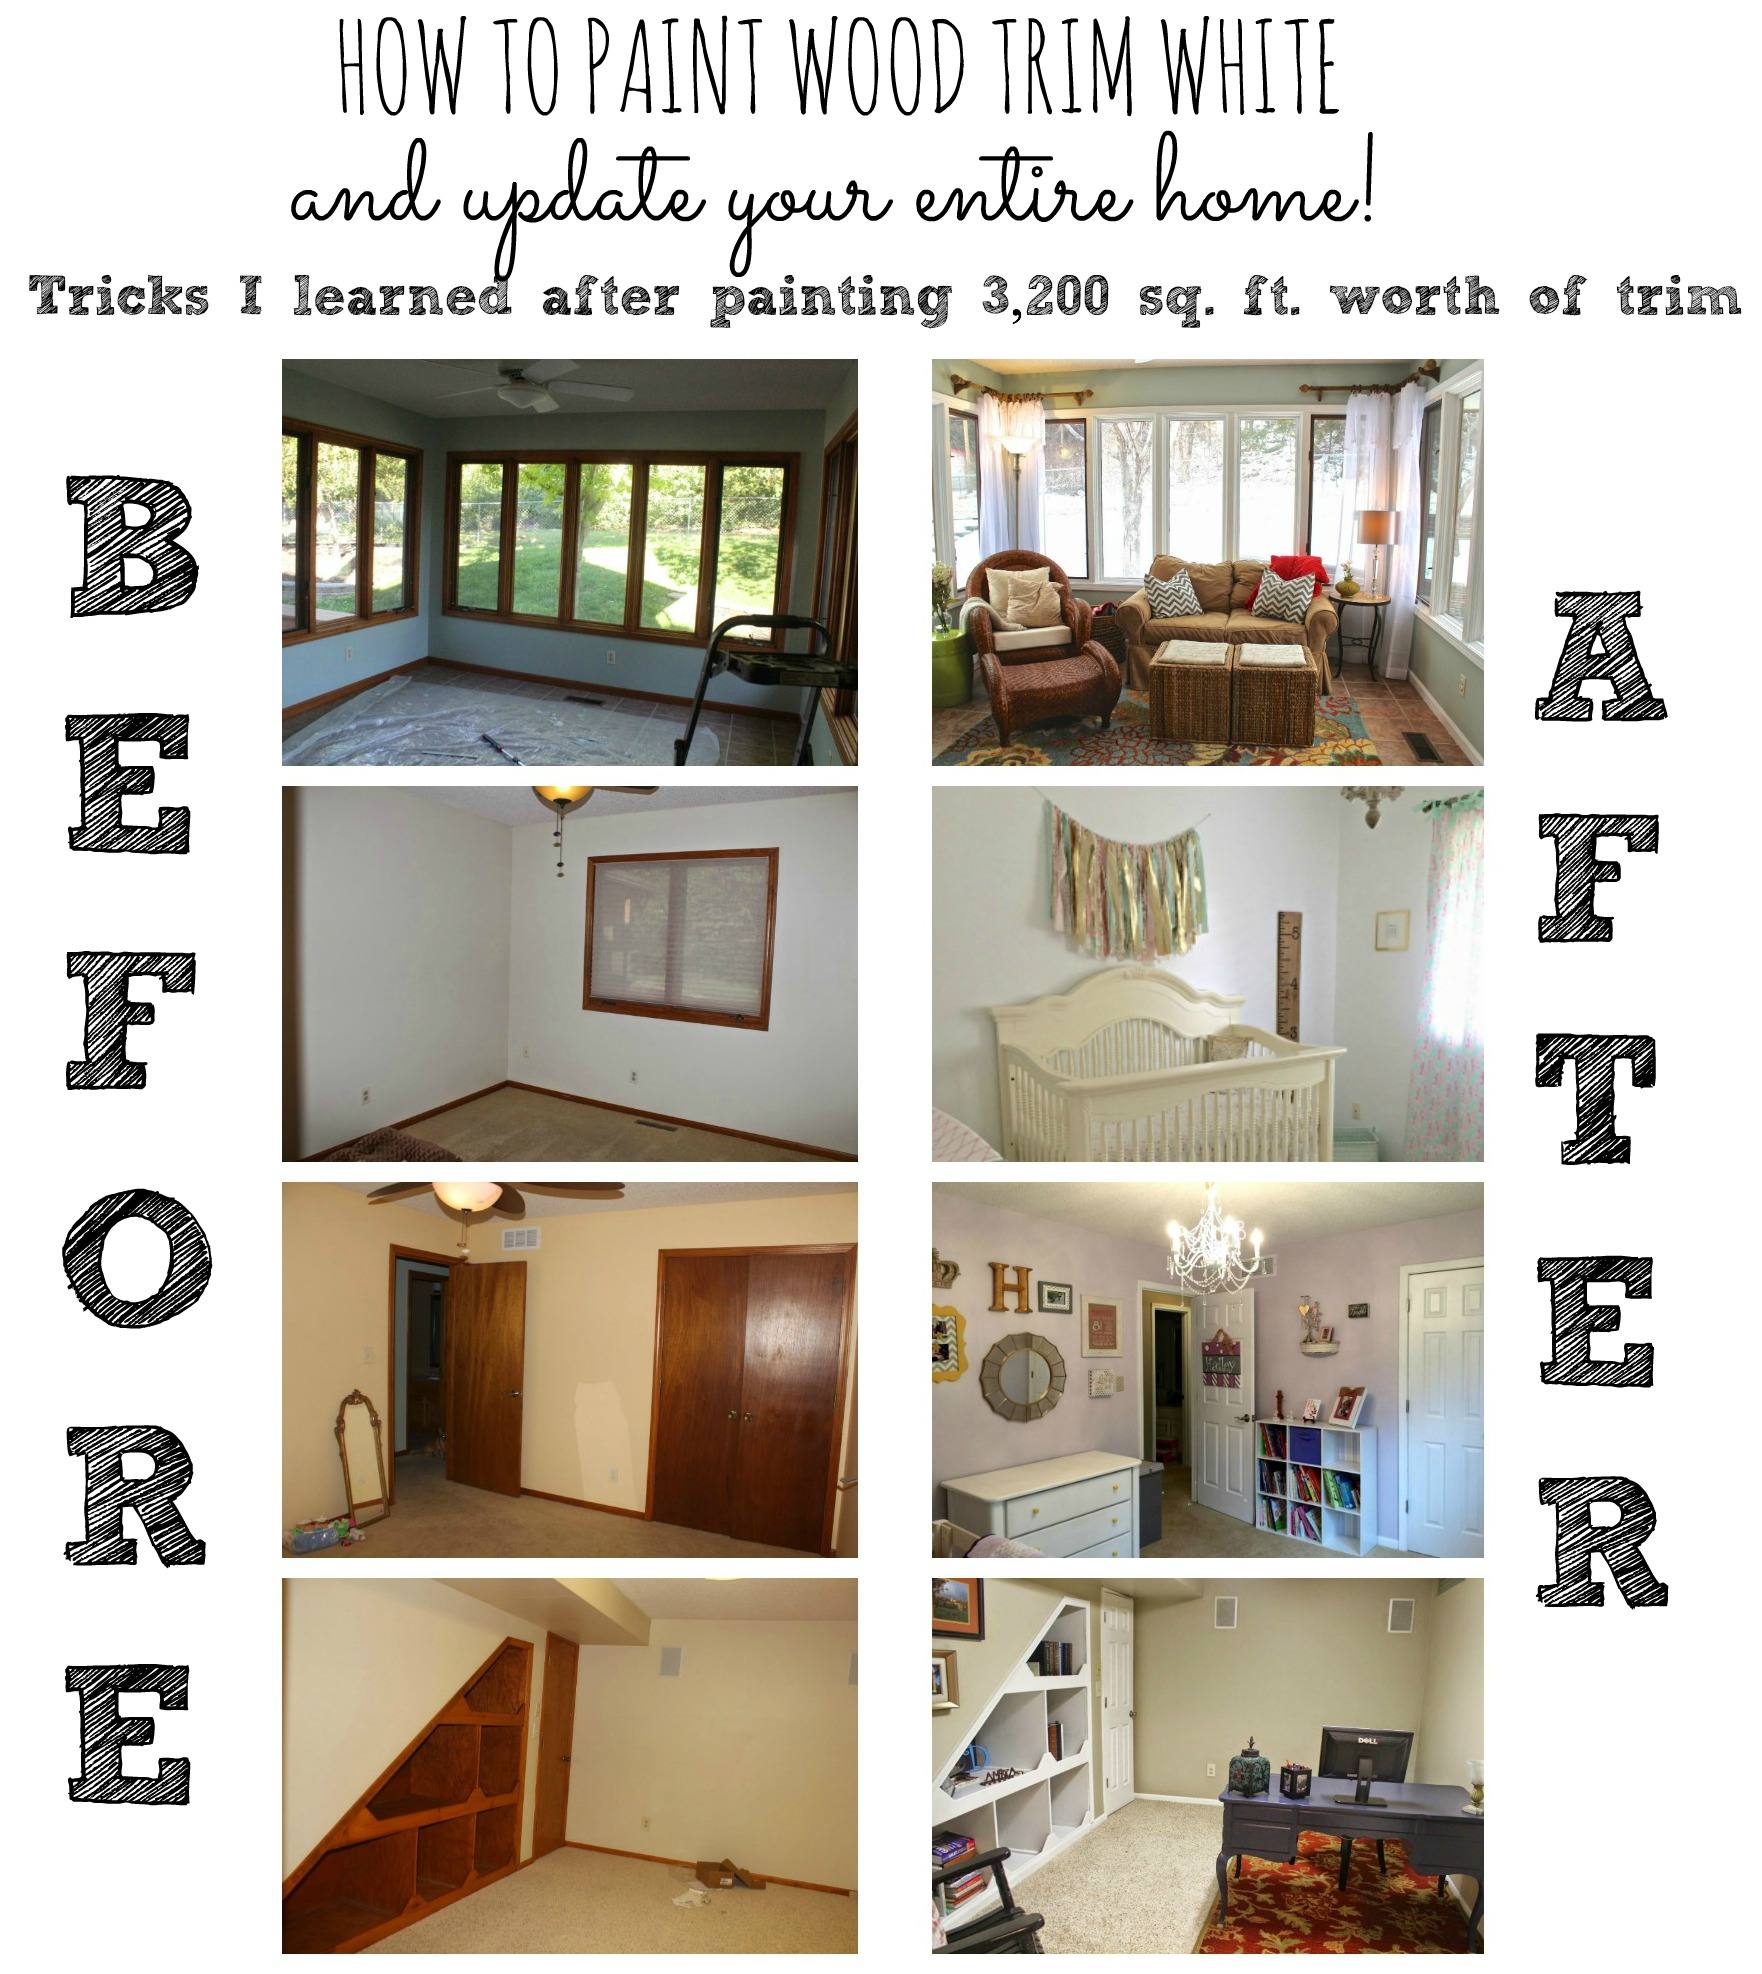 How To Paint Trim White My Method For Painting My Whole Home Myself